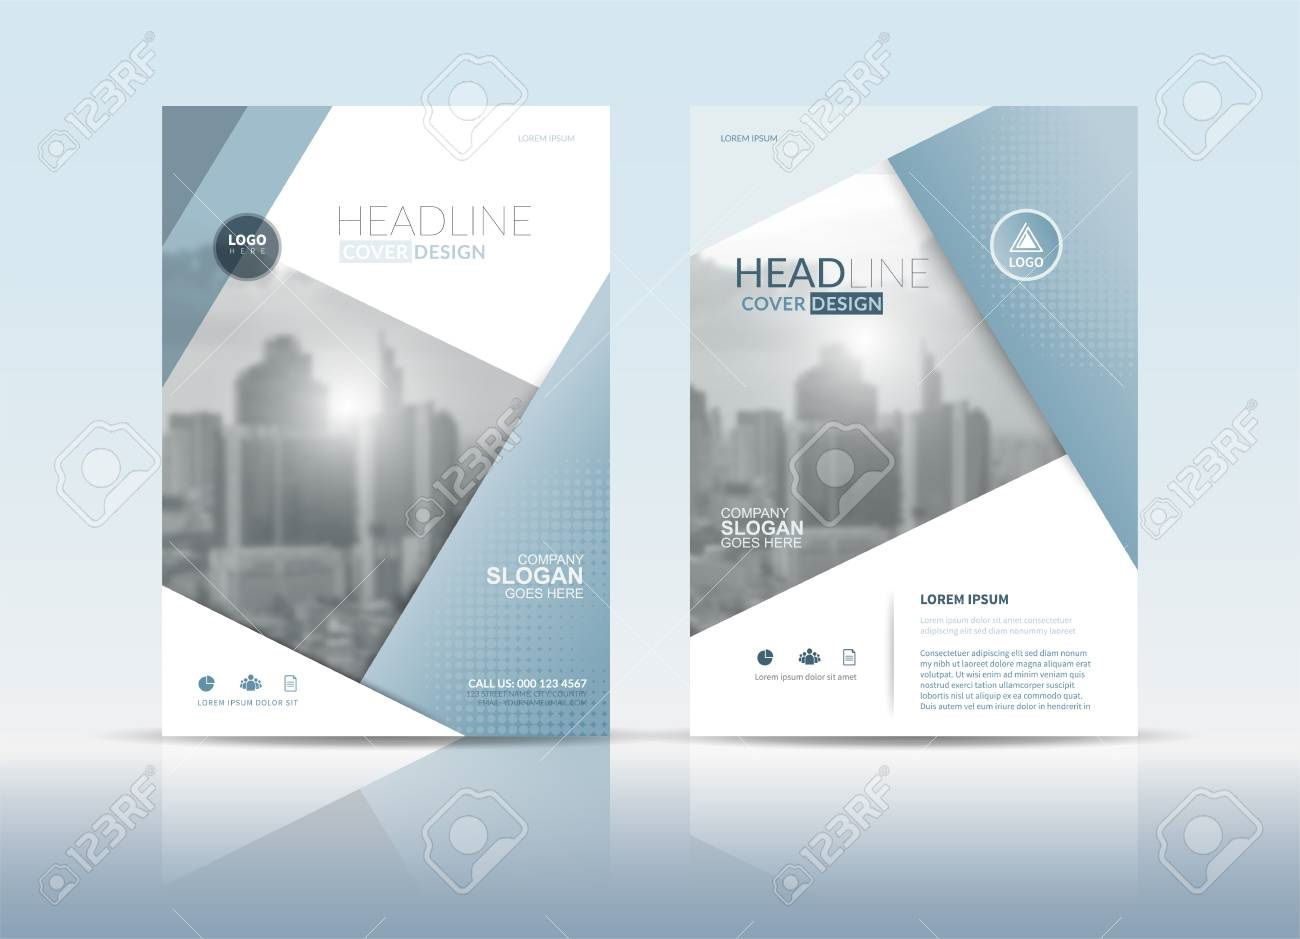 003 Dreaded Free Download Annual Report Cover Design Template Inspiration  Page In WordFull